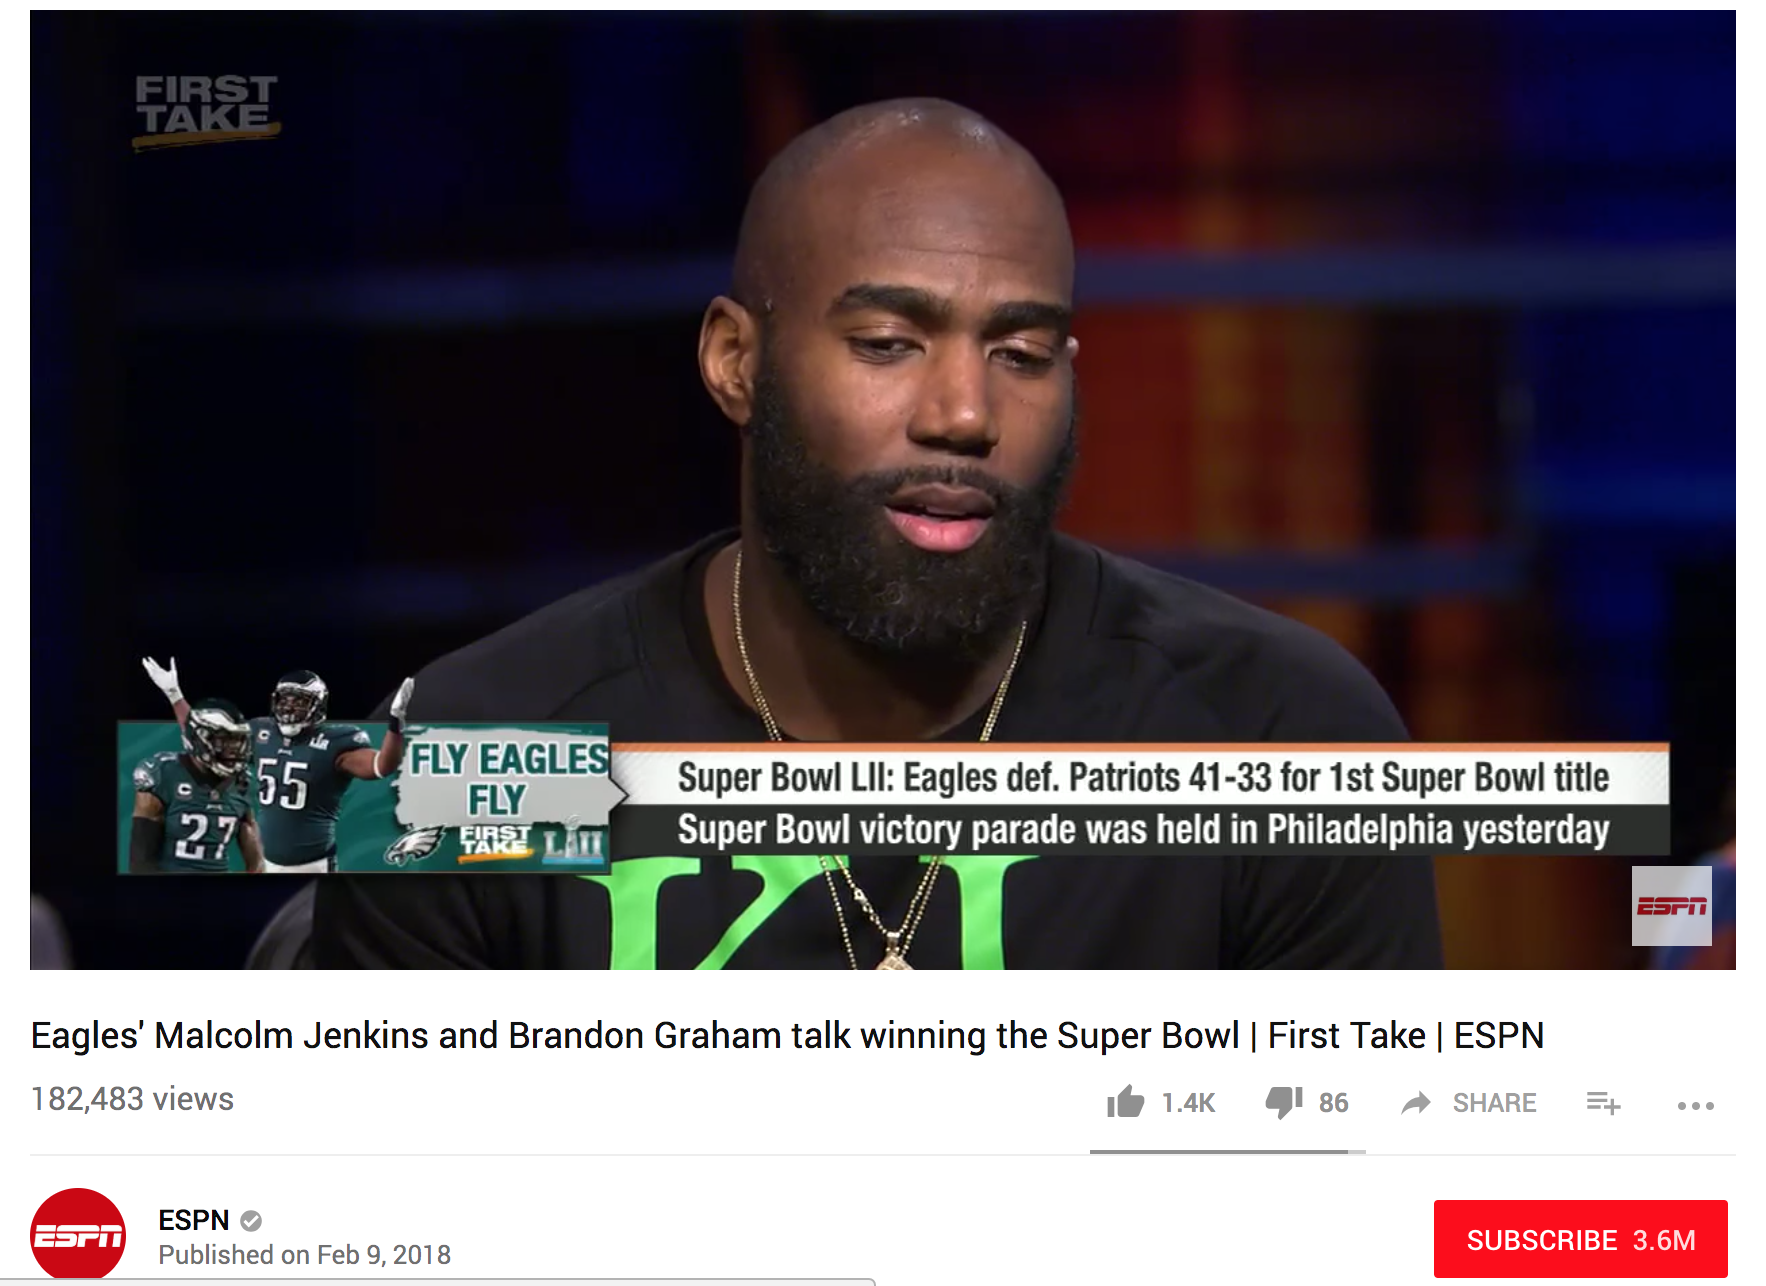 ESPN First Take -  First Take Stephen A. Smith and Max Kellerman are joined by Eagles' Malcolm Jenkins and Brandon Graham talk winning the Super Bowl.